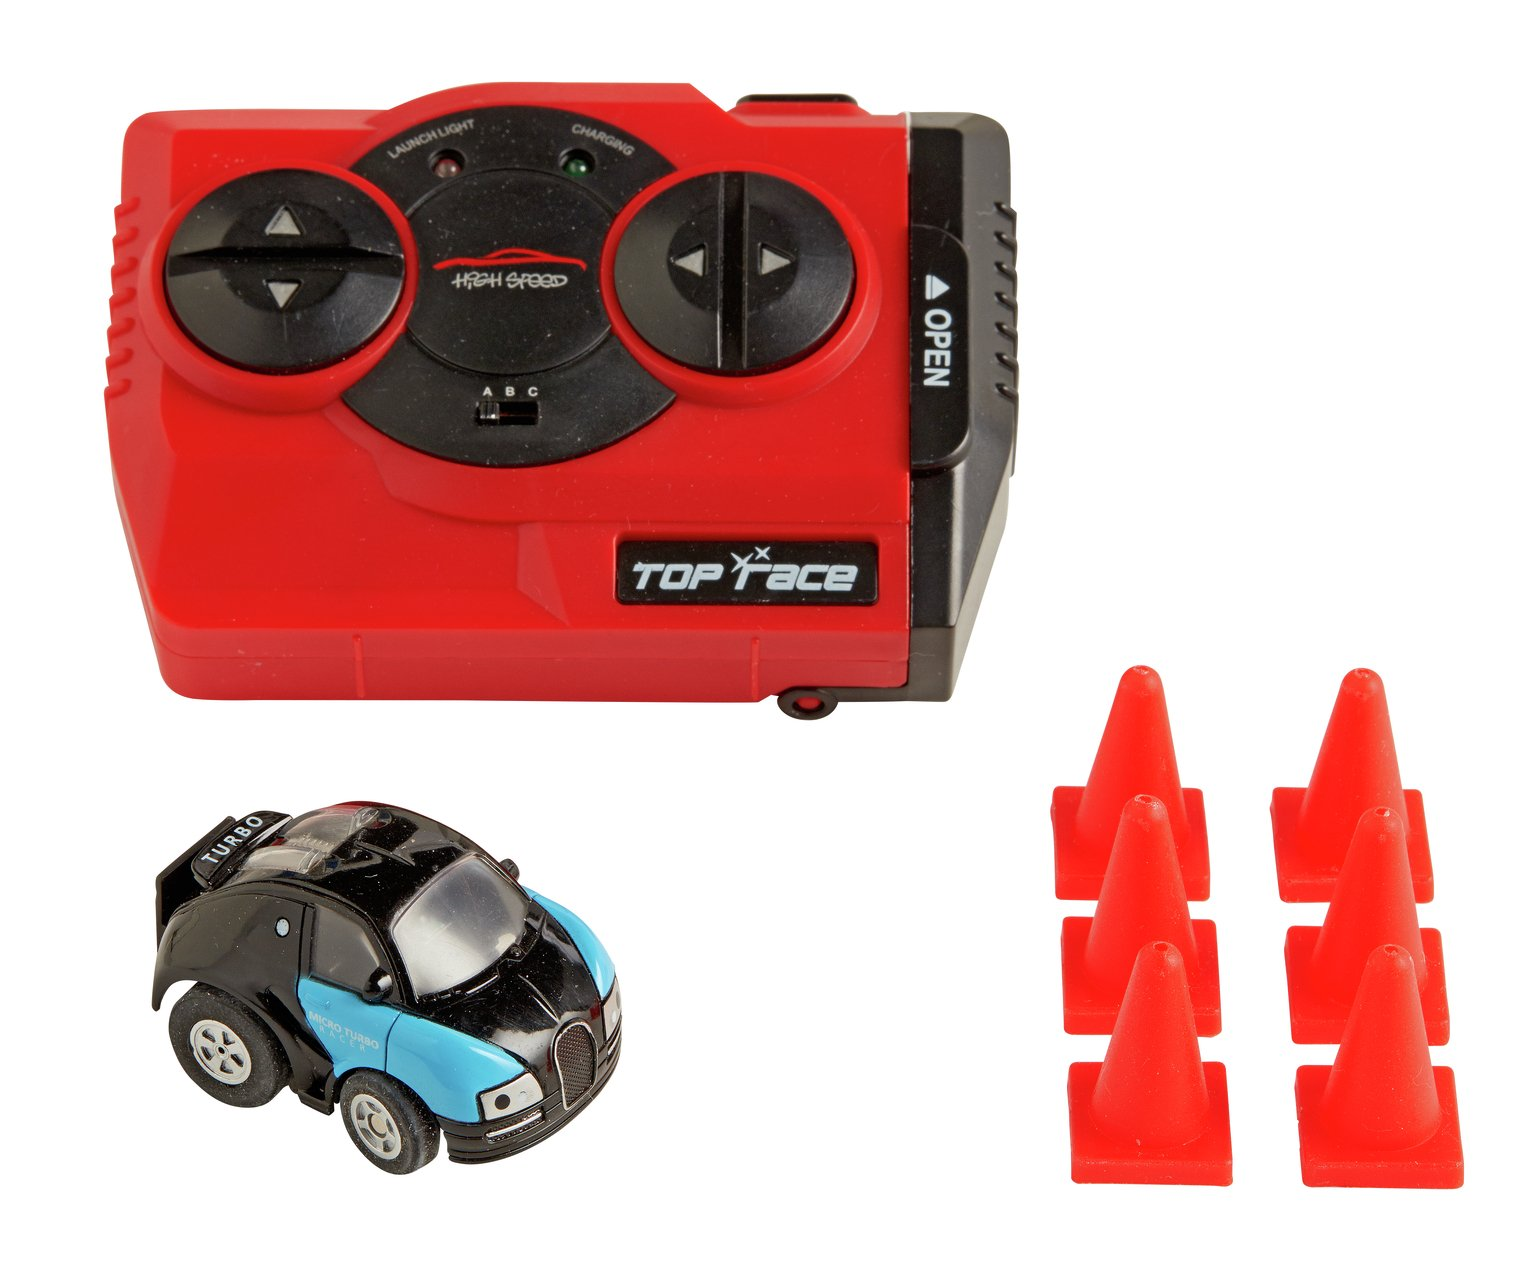 RED5 Q2 Turbo Racer Remote Control Car